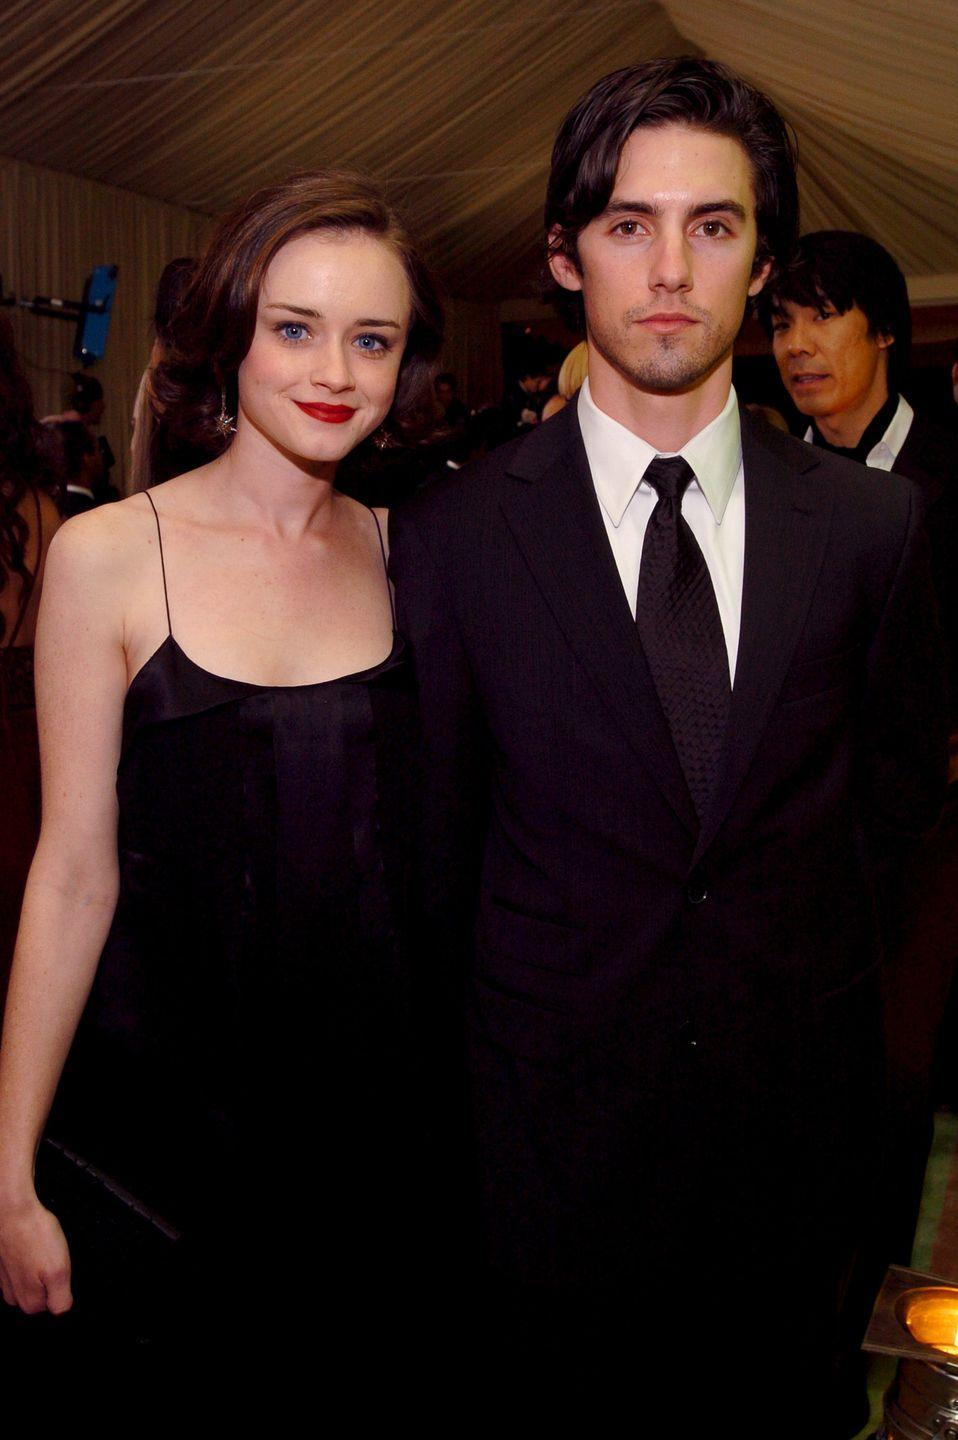 <p>Bledel and Ventimiglia were on-screen love interests on <em>Gilmore Girls</em>, which extended off-screen as well. But just like their characters, the couple parted ways in 2006—only to recently reunite years later for the show's Netflix reboot, <em>Gilmore Girls: A Year in the Life.</em></p>